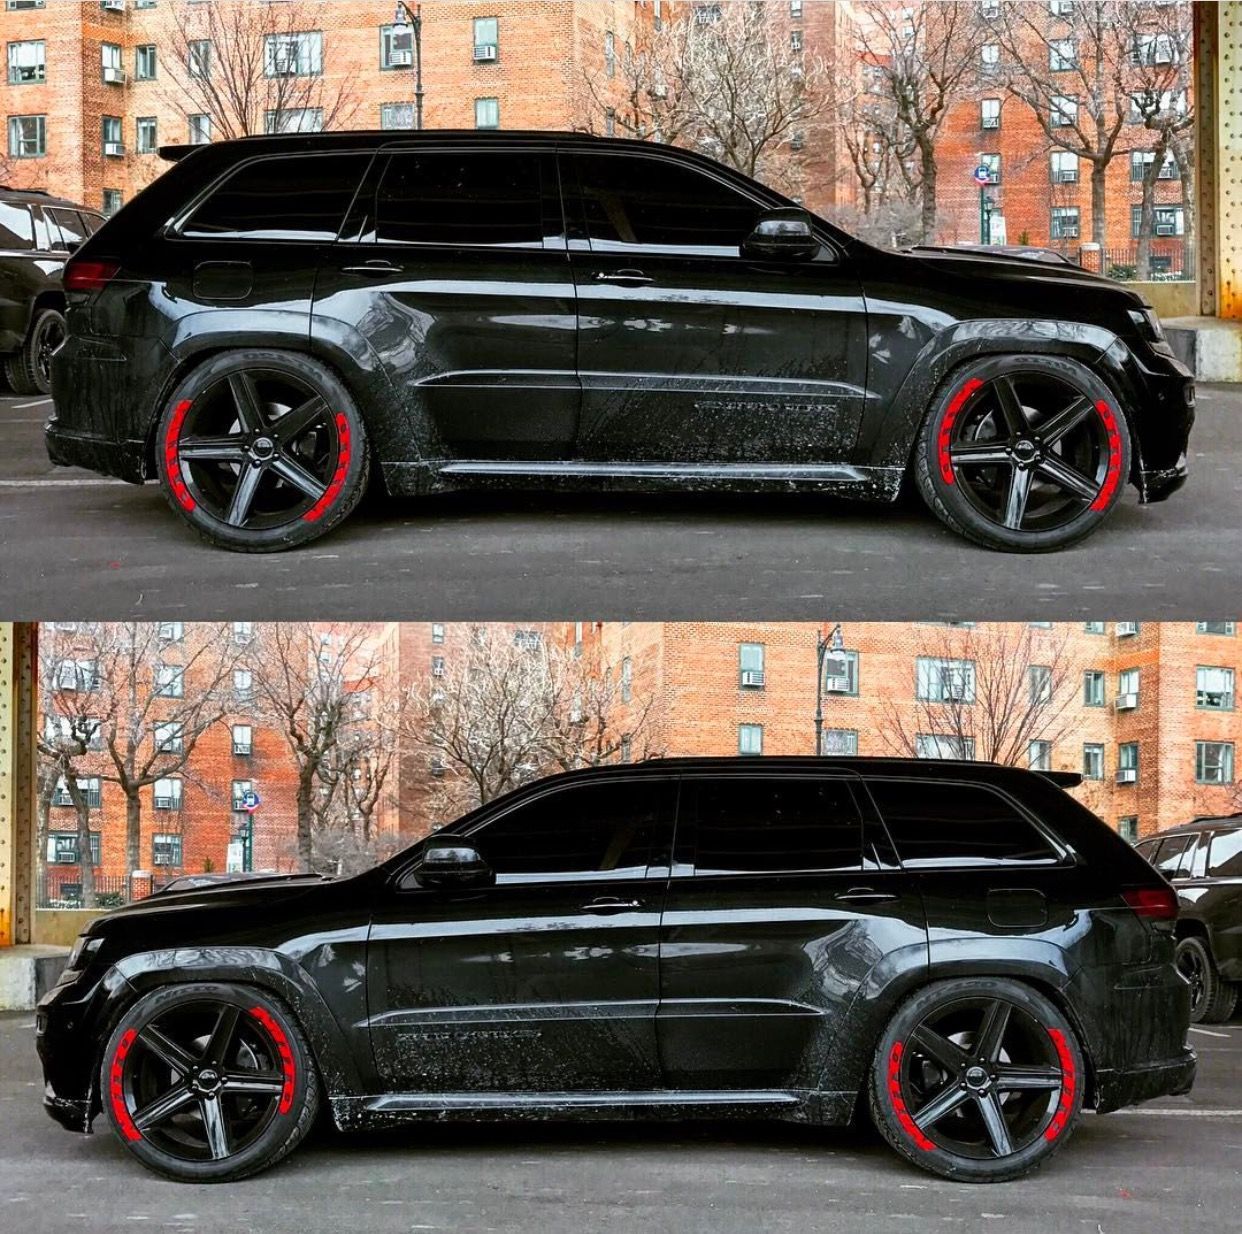 srt8 yes yes yes toys jeep jeep srt8 cars. Black Bedroom Furniture Sets. Home Design Ideas